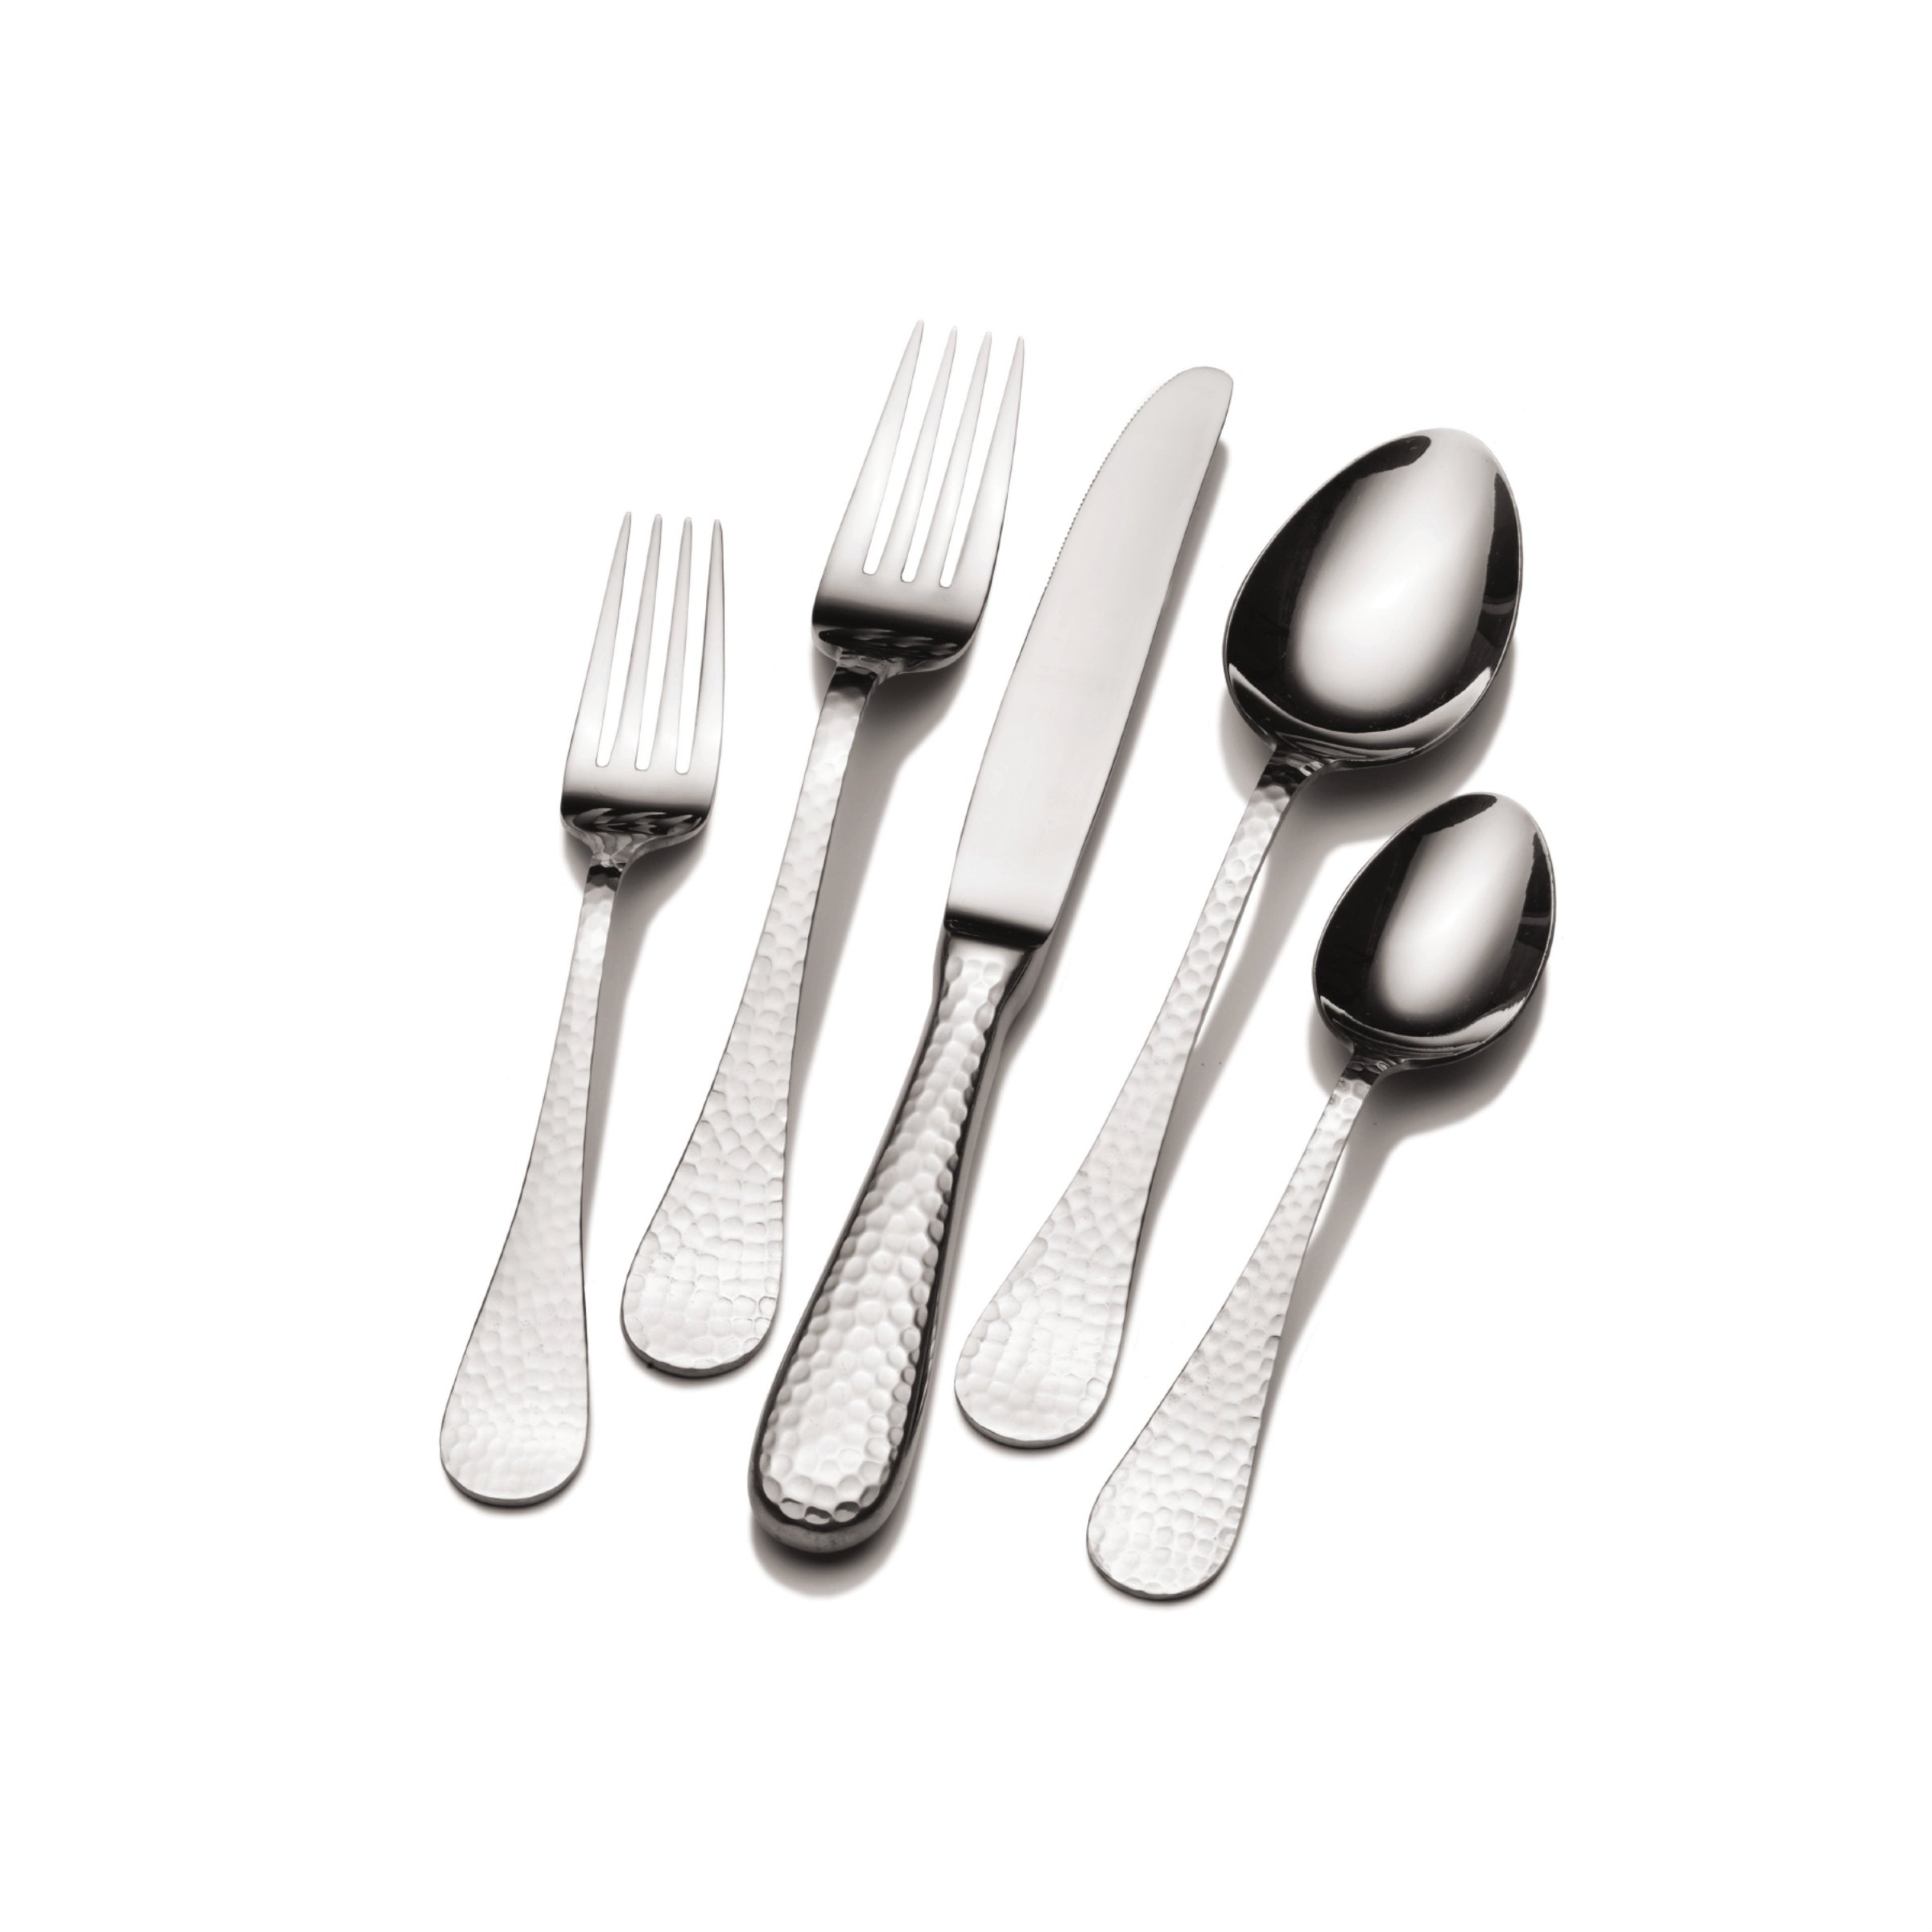 Towle Living 5201344 Continental Hammered 102-Piece 18/10 Stainless Steel Flatware Set with Serveware, Service for 12 by Wallace